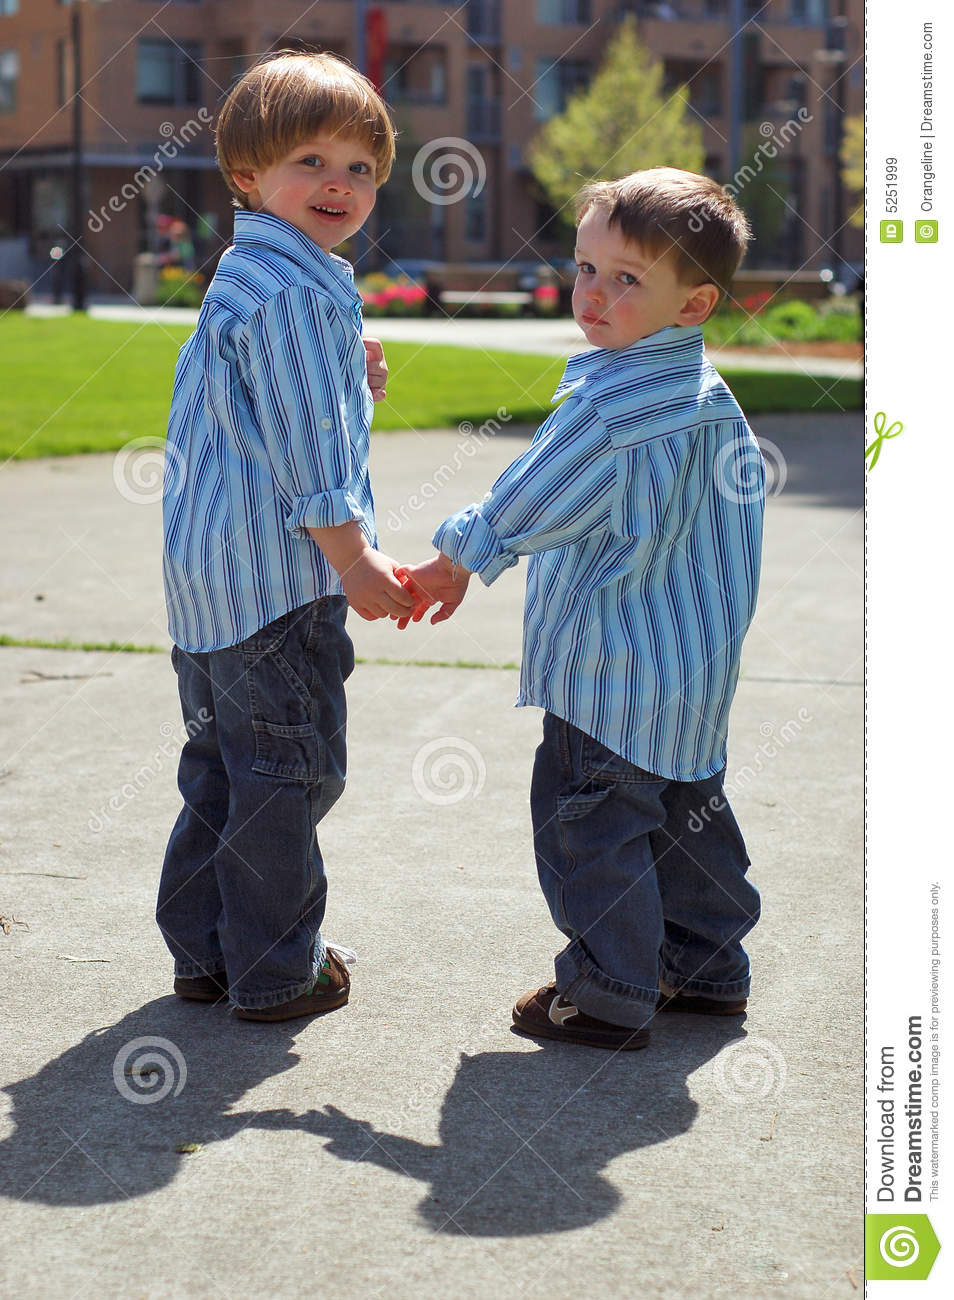 Two Young Brothers - Holding Hands